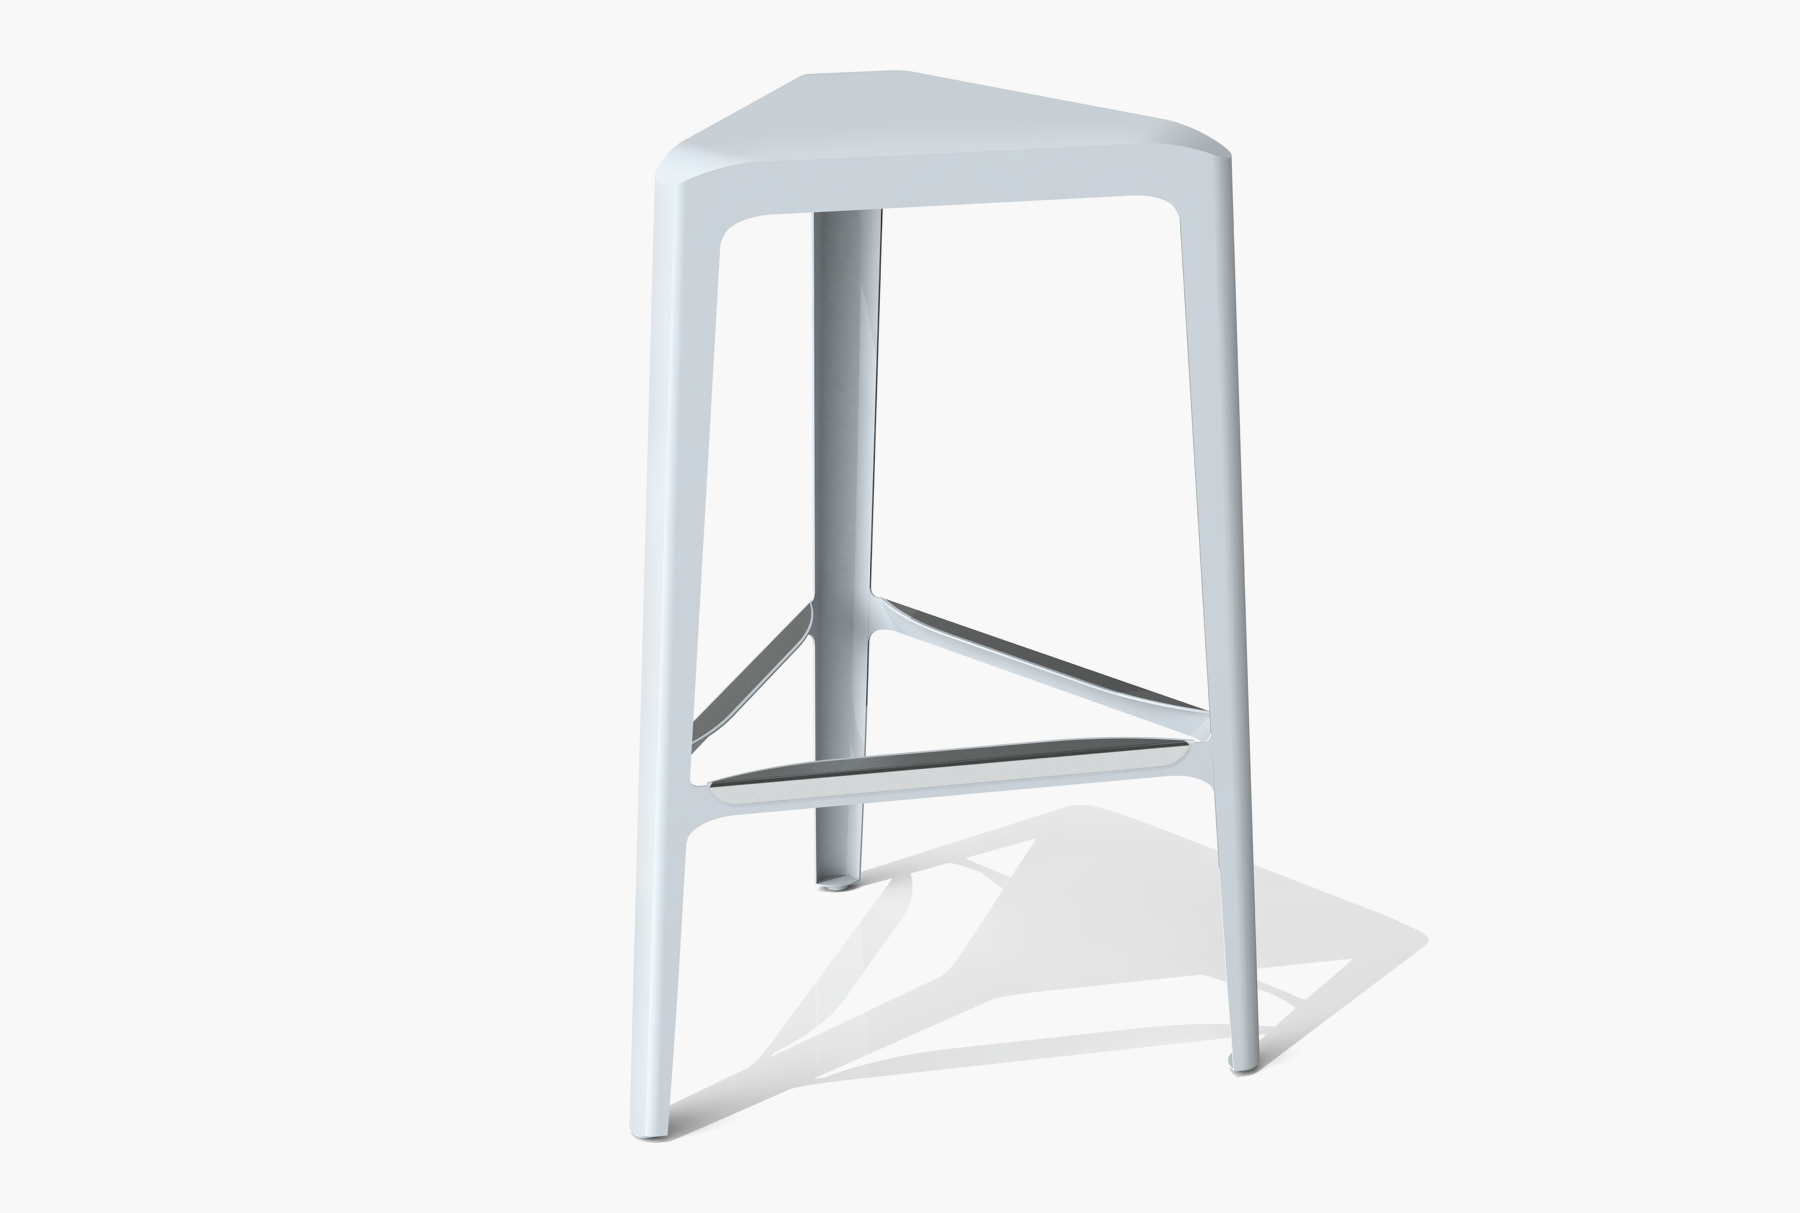 Arktura Clic Bar Stool in Glacier Gray